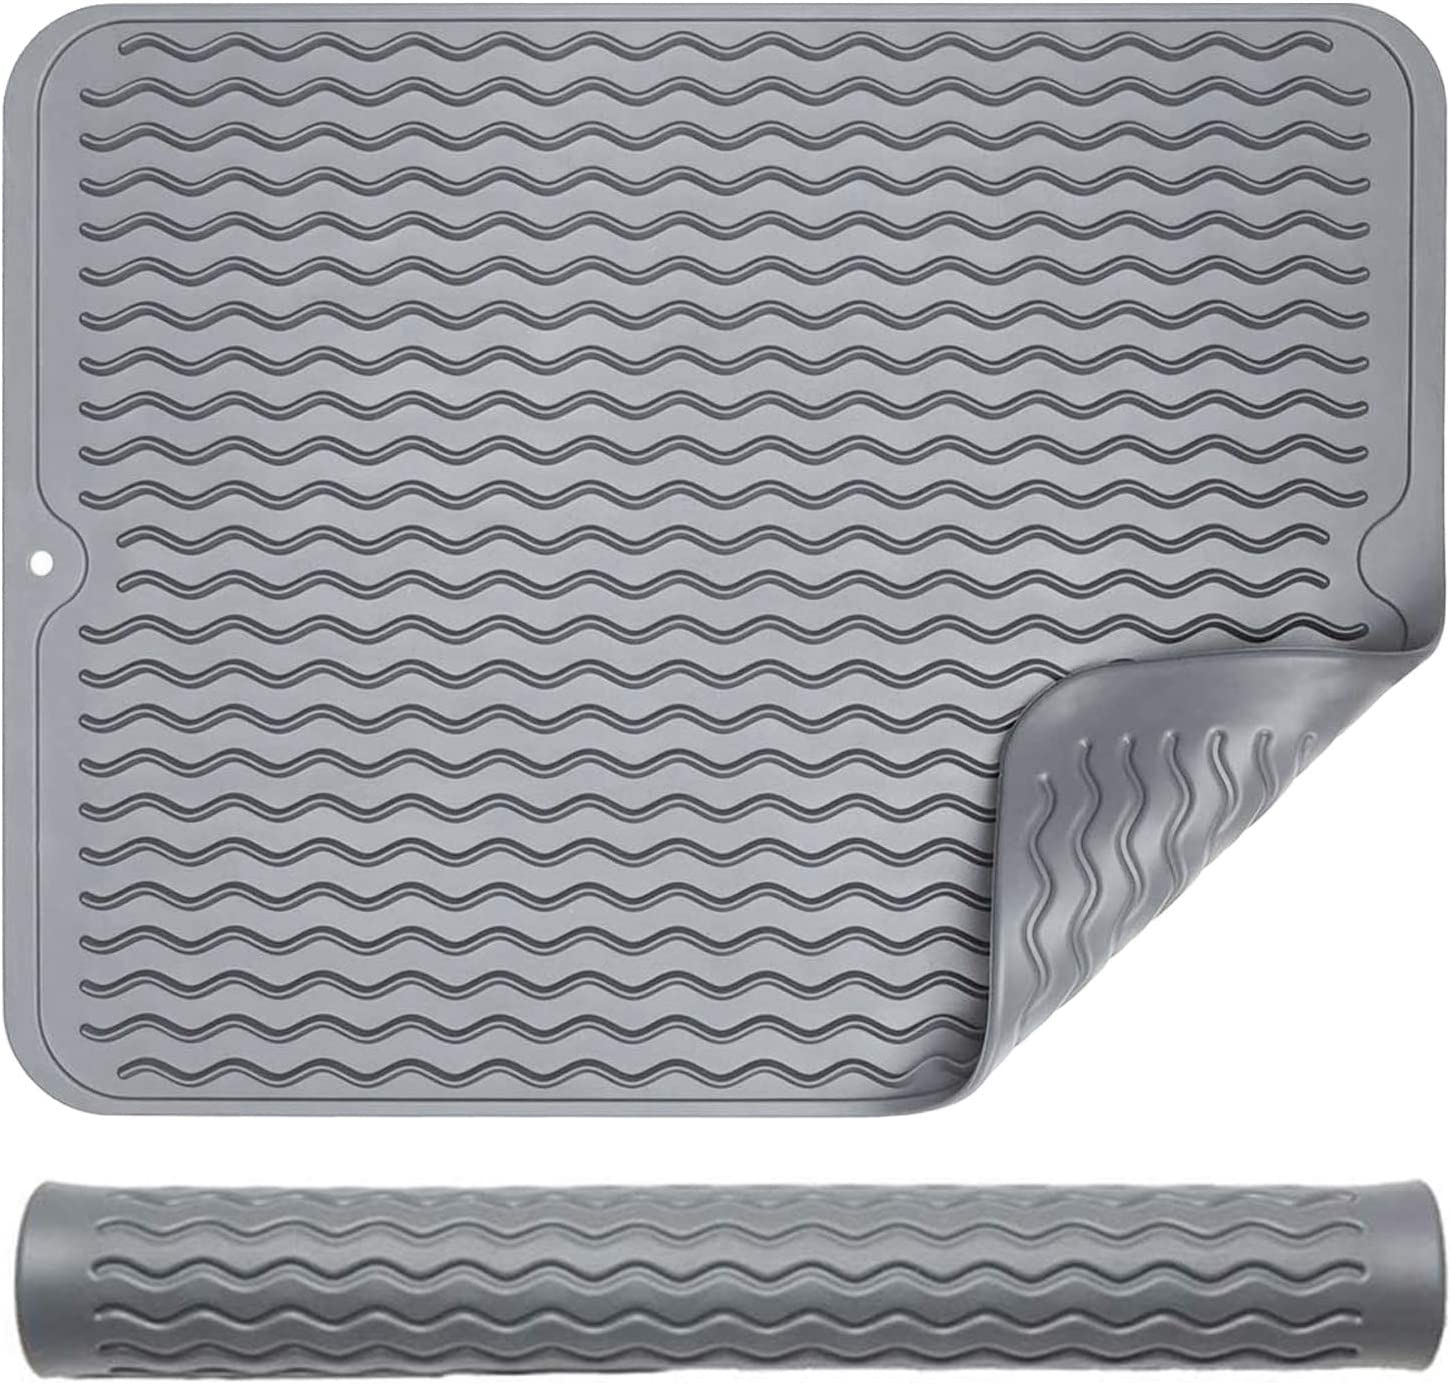 Silicone Dish Drying Mat for Kitchen Counter - Grey Sink Tableware Pad Dishes Drainer Non-Slip Waterproof Heat Resistant Dishwasher Safe Dish Draining Mat, Hot Pad, Durable, Easy Clean